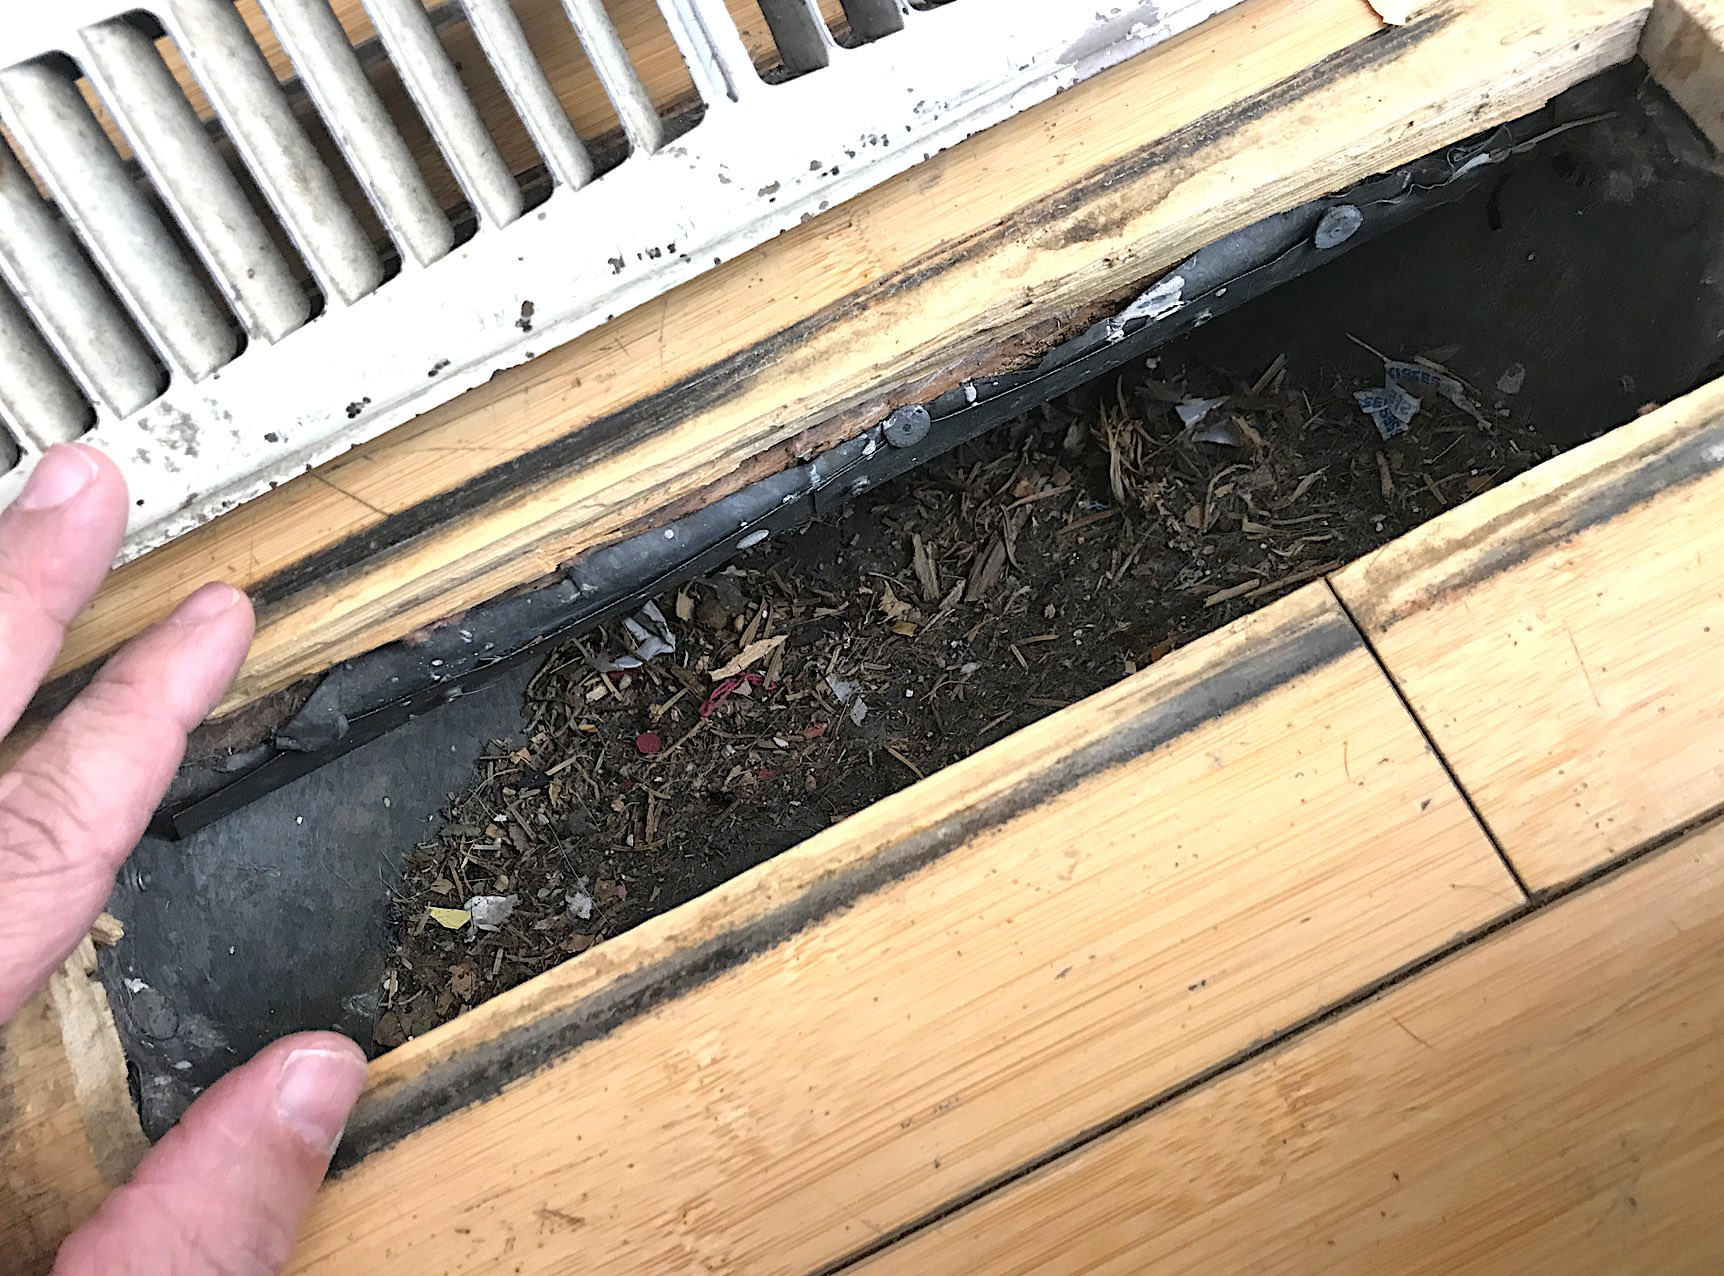 The Home Inspector's Guide to Air Duct Cleaning, Part 3: Whether or Not to Recommend Air Duct Cleaning